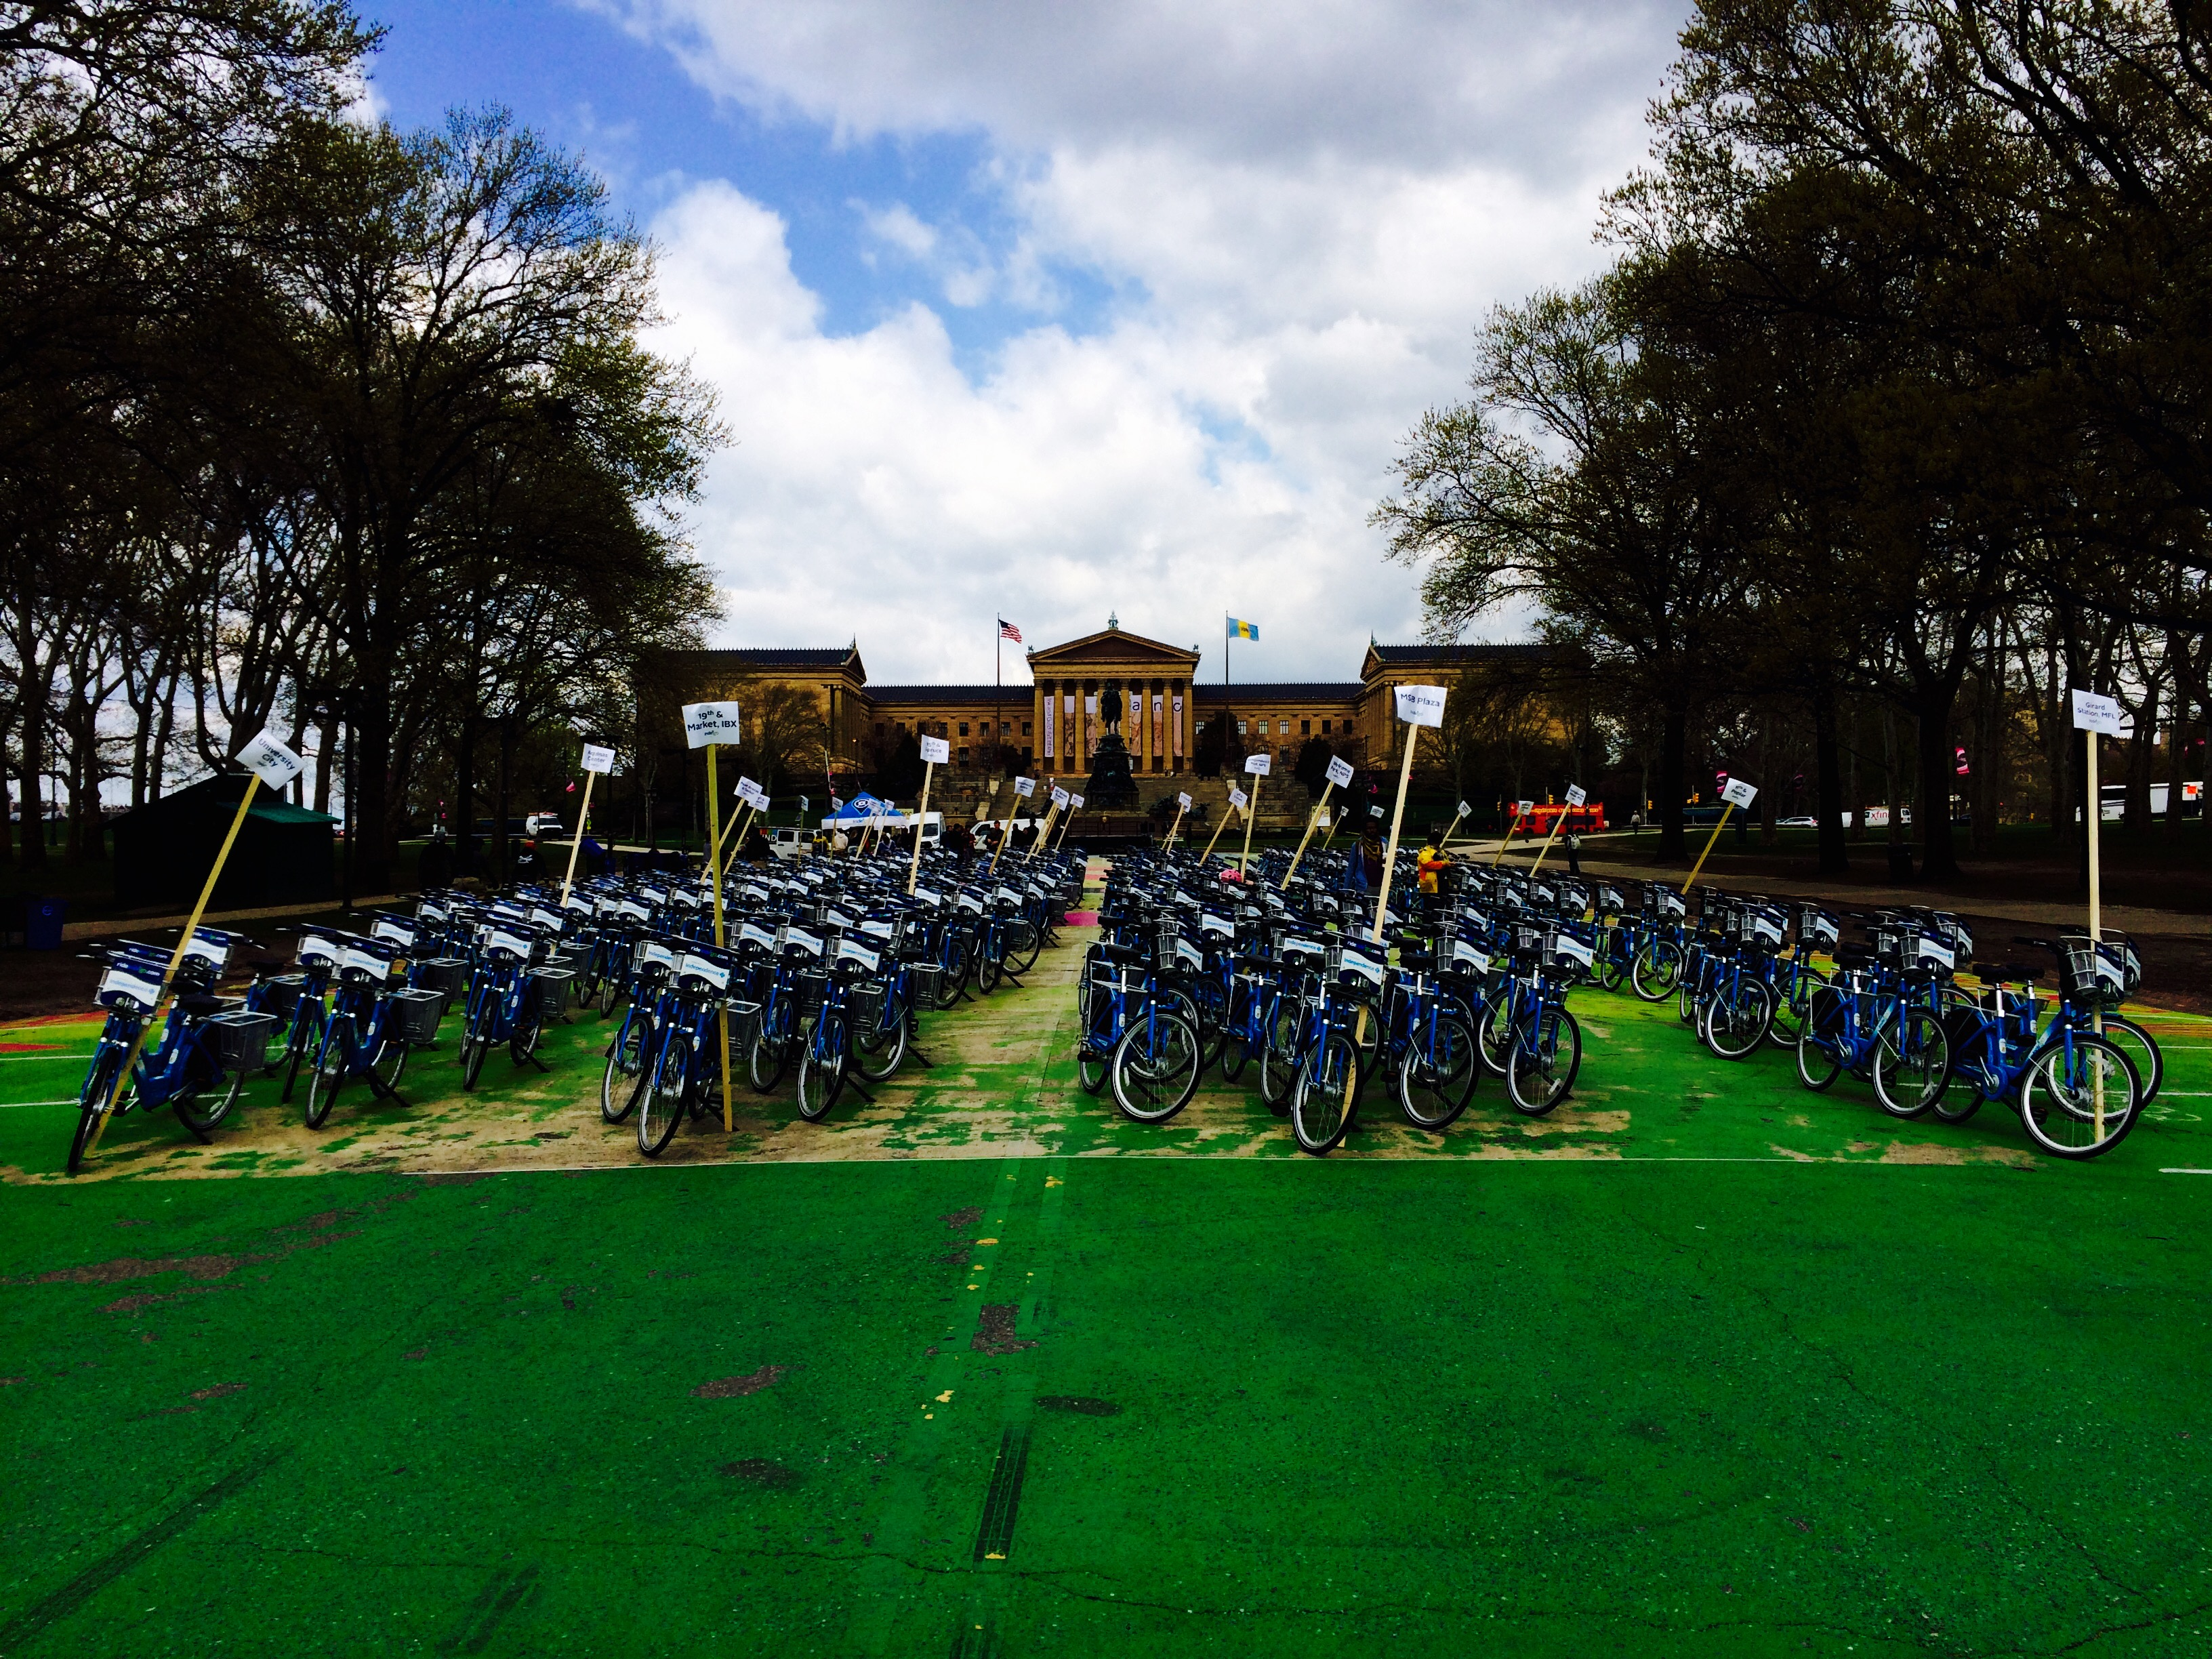 Indego Bikes on Eakins Oval